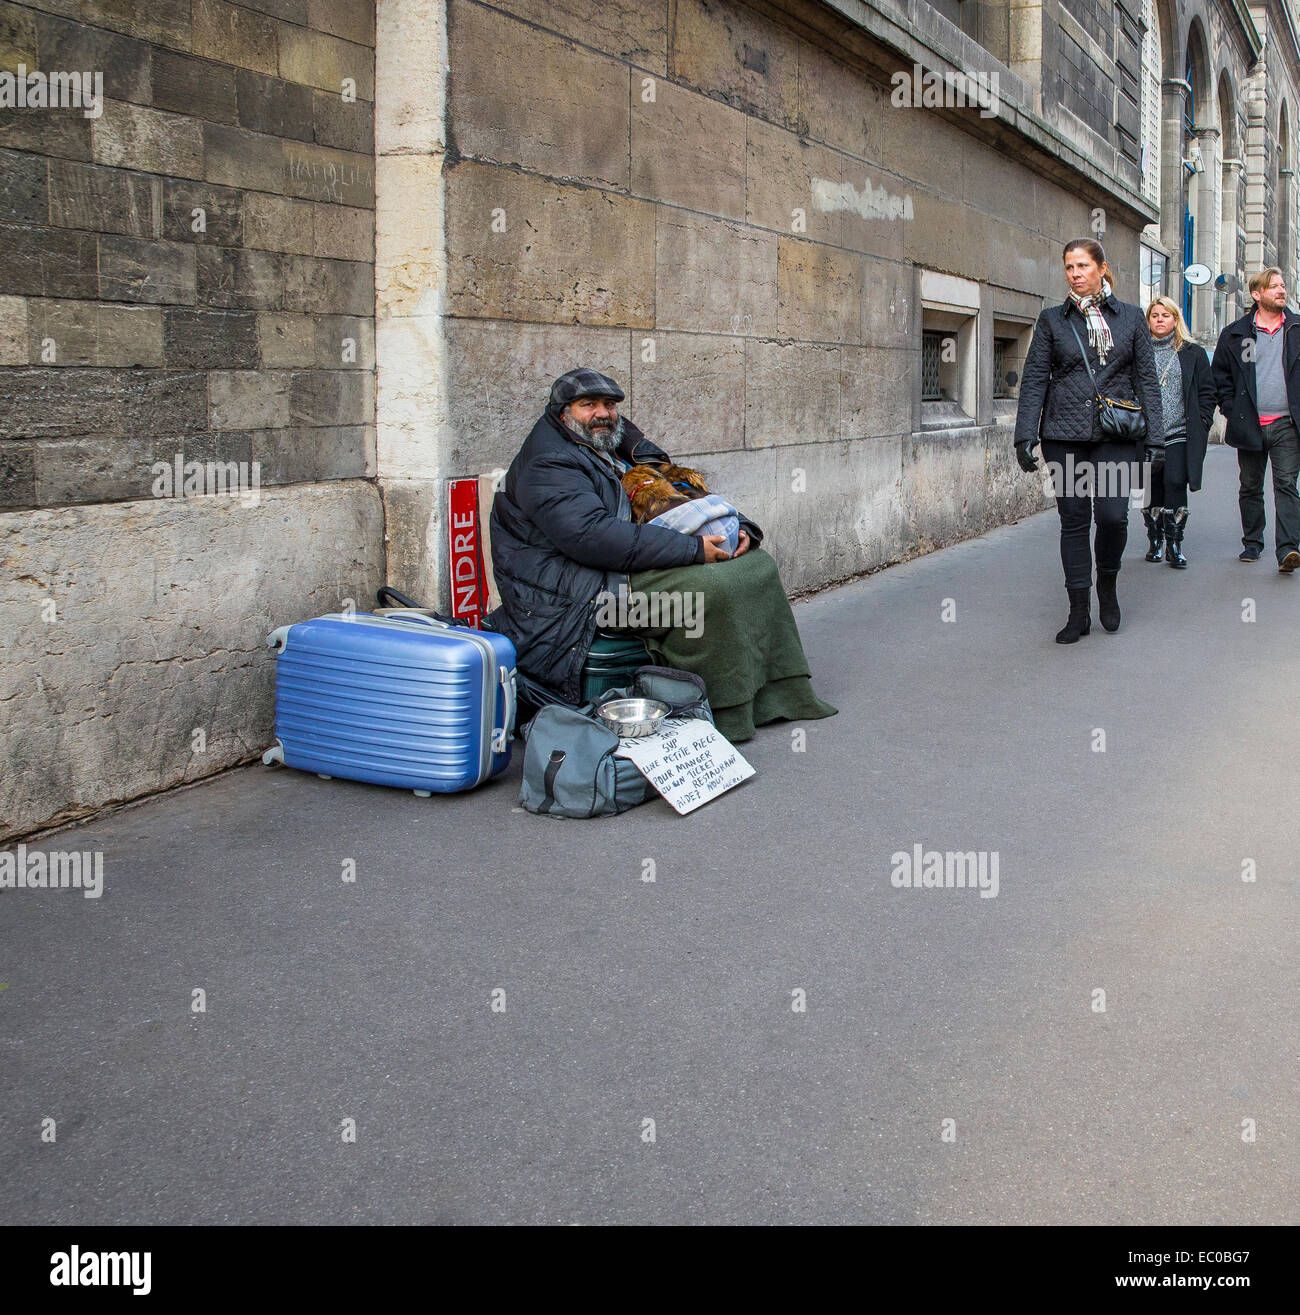 homeless man begging street beggar passers by - Stock Image